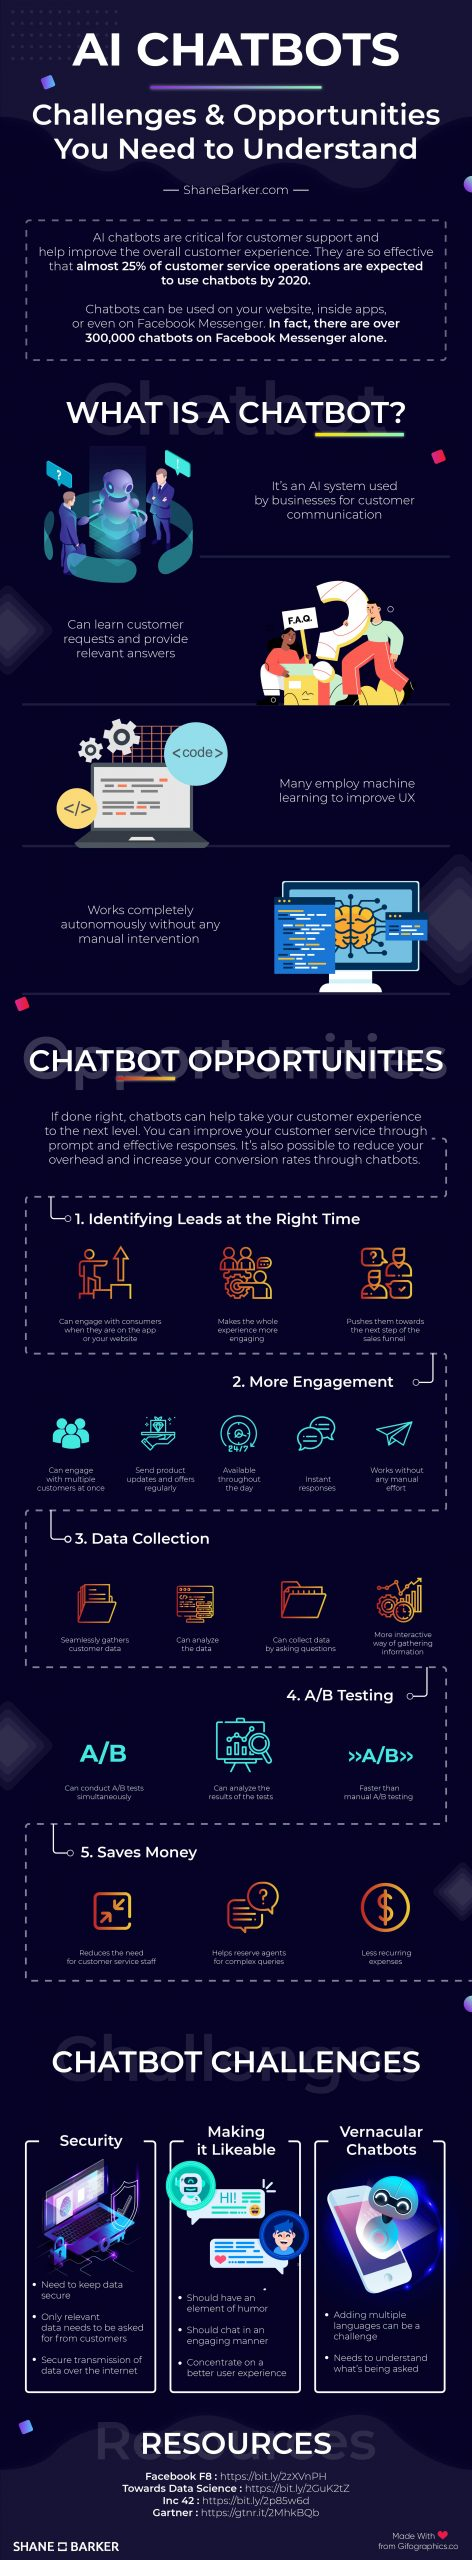 Infographic with challenges and benefits of AI chatbots.